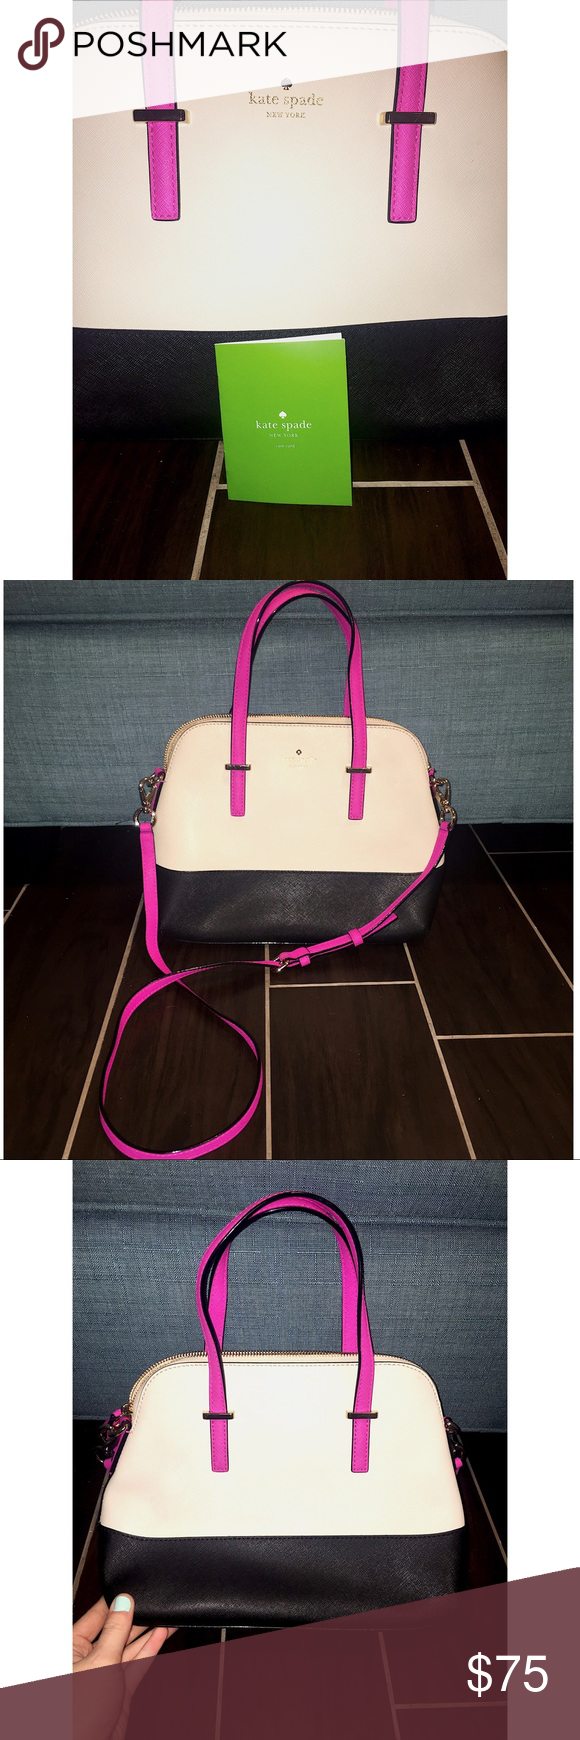 Kate Spade Bag - Rare! Rarely available design by Kate Spade - black and cream base with hot pink handles and cross-body strap. Very gently used; zero damages, bottom and edges are still in perfect condition! Comes with original dust bag, as well. kate spade Bags